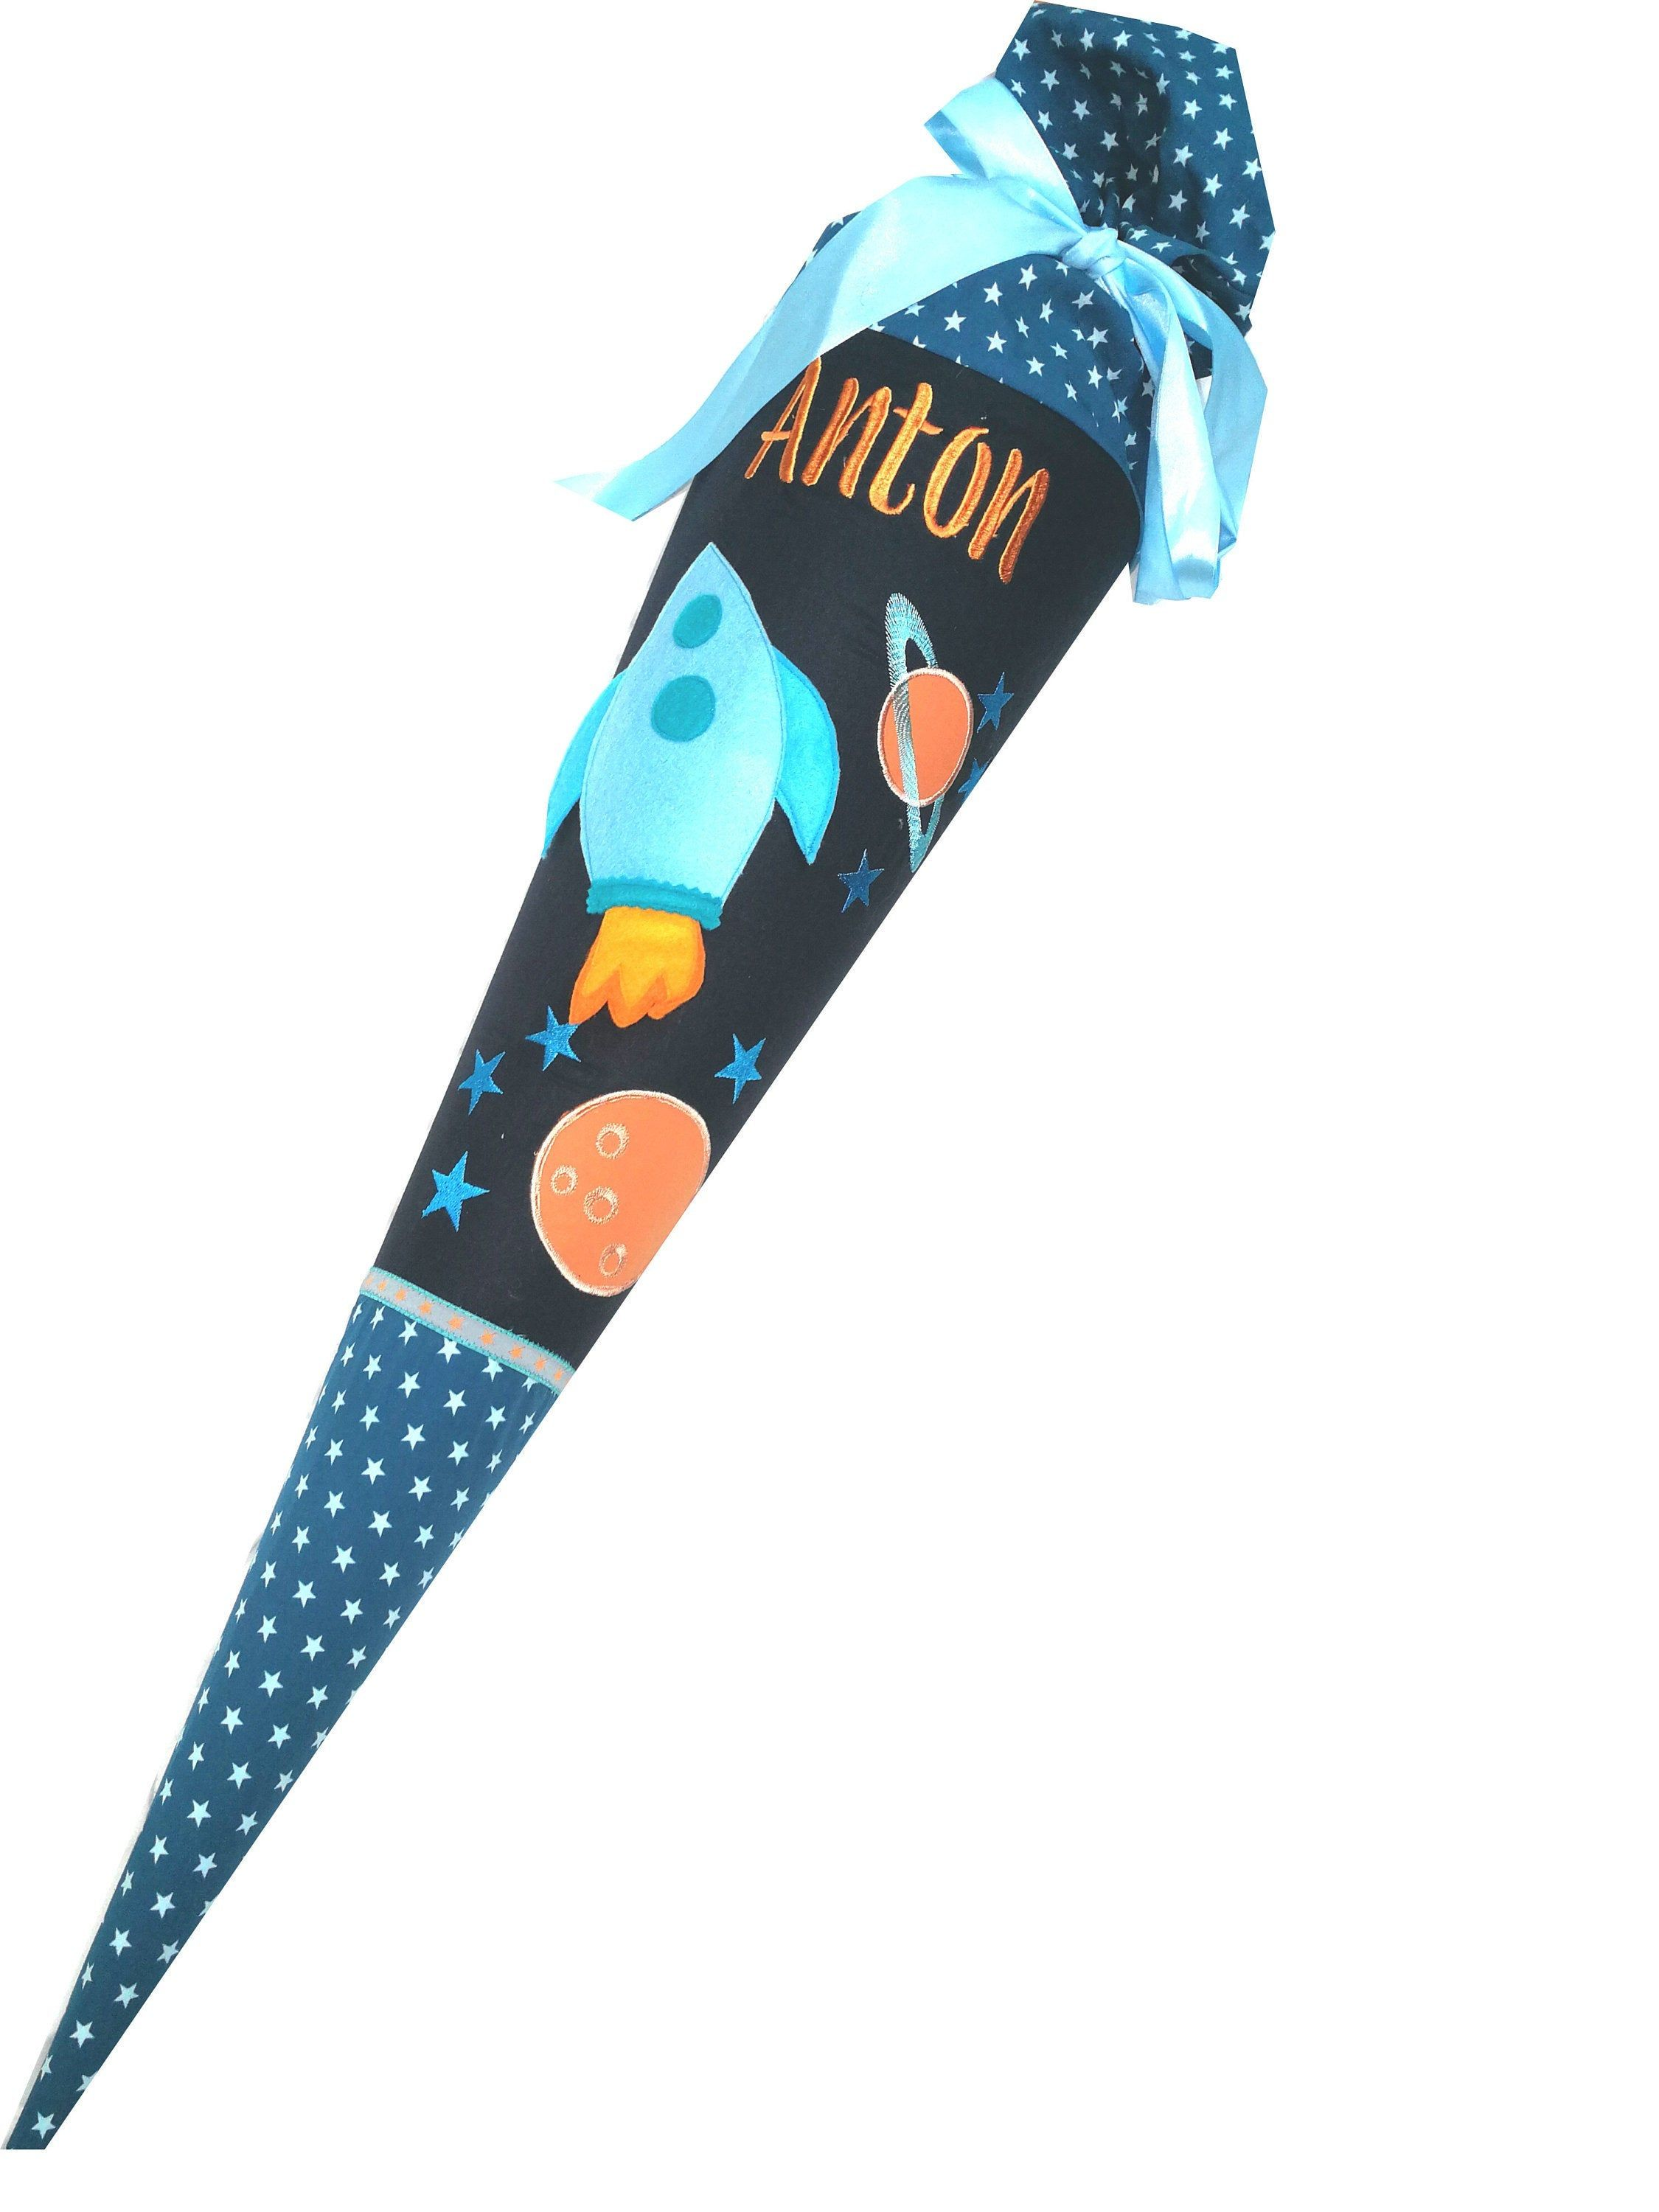 Schultute Sugar Bag Spaceship Rocket Galaxy 3 D Compl With Blank 70 Cm Or Xxl 85 Cm With Name And Later Pillow Inlet In 2020 Handmade Accessories Handmade Rocket